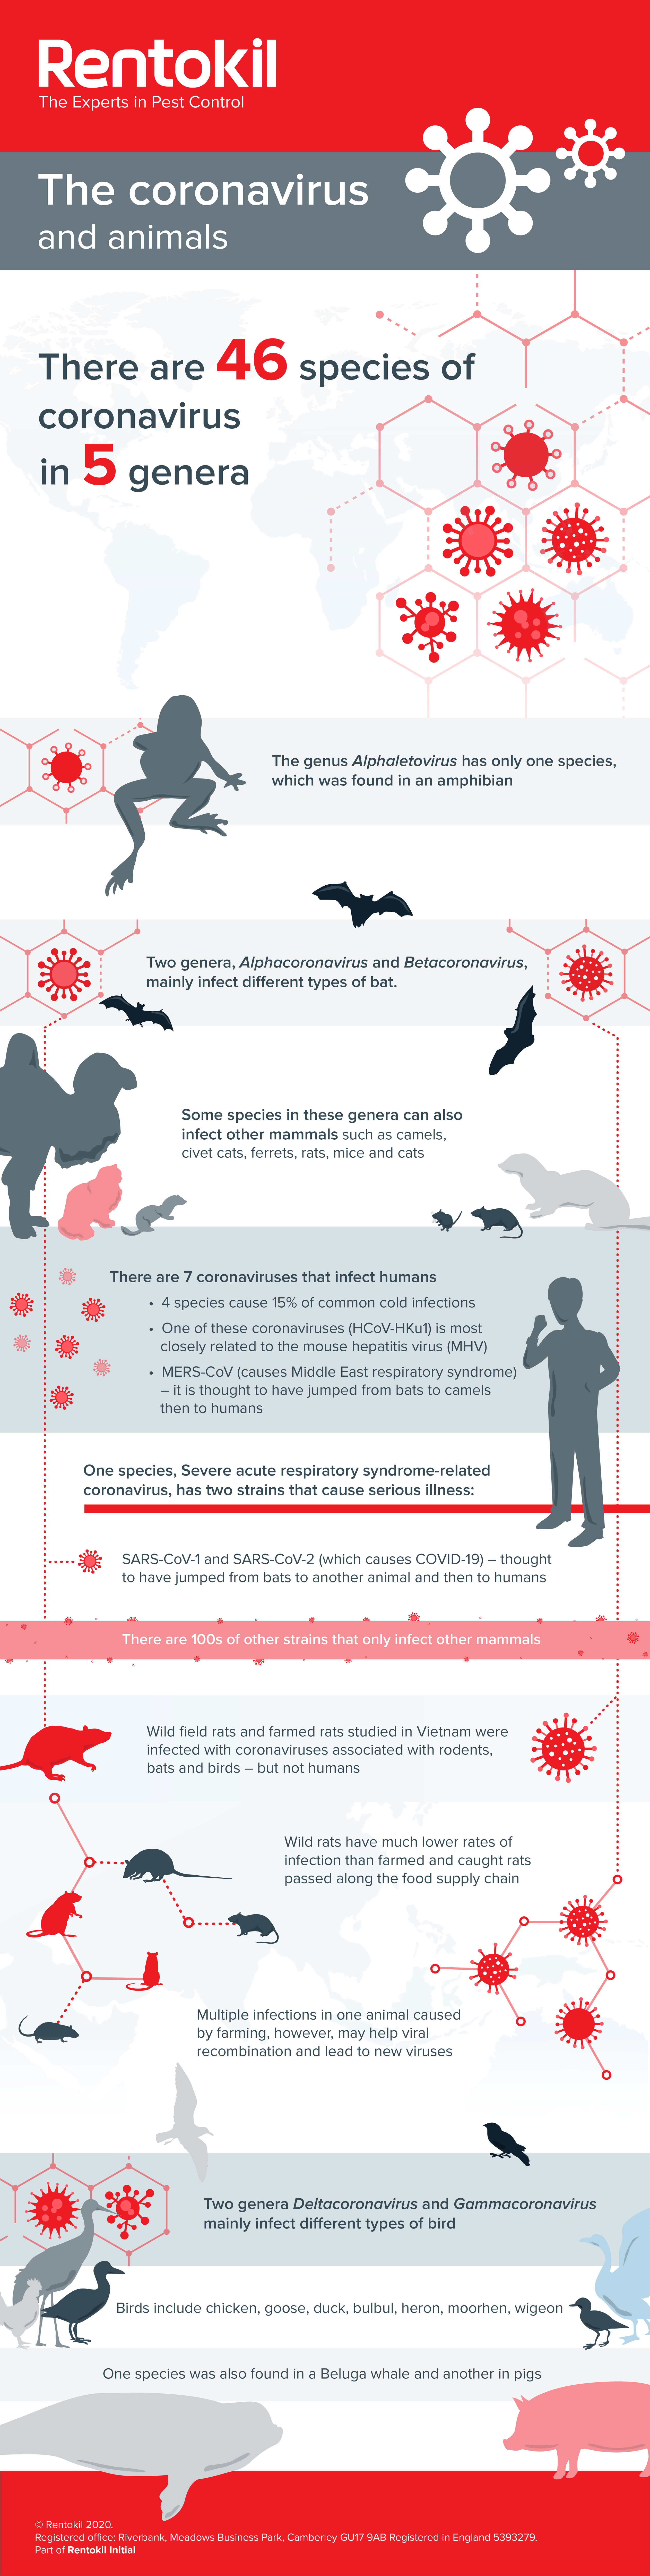 rentokil-rodent-risks-and-coronavirus-infographic-020720-2